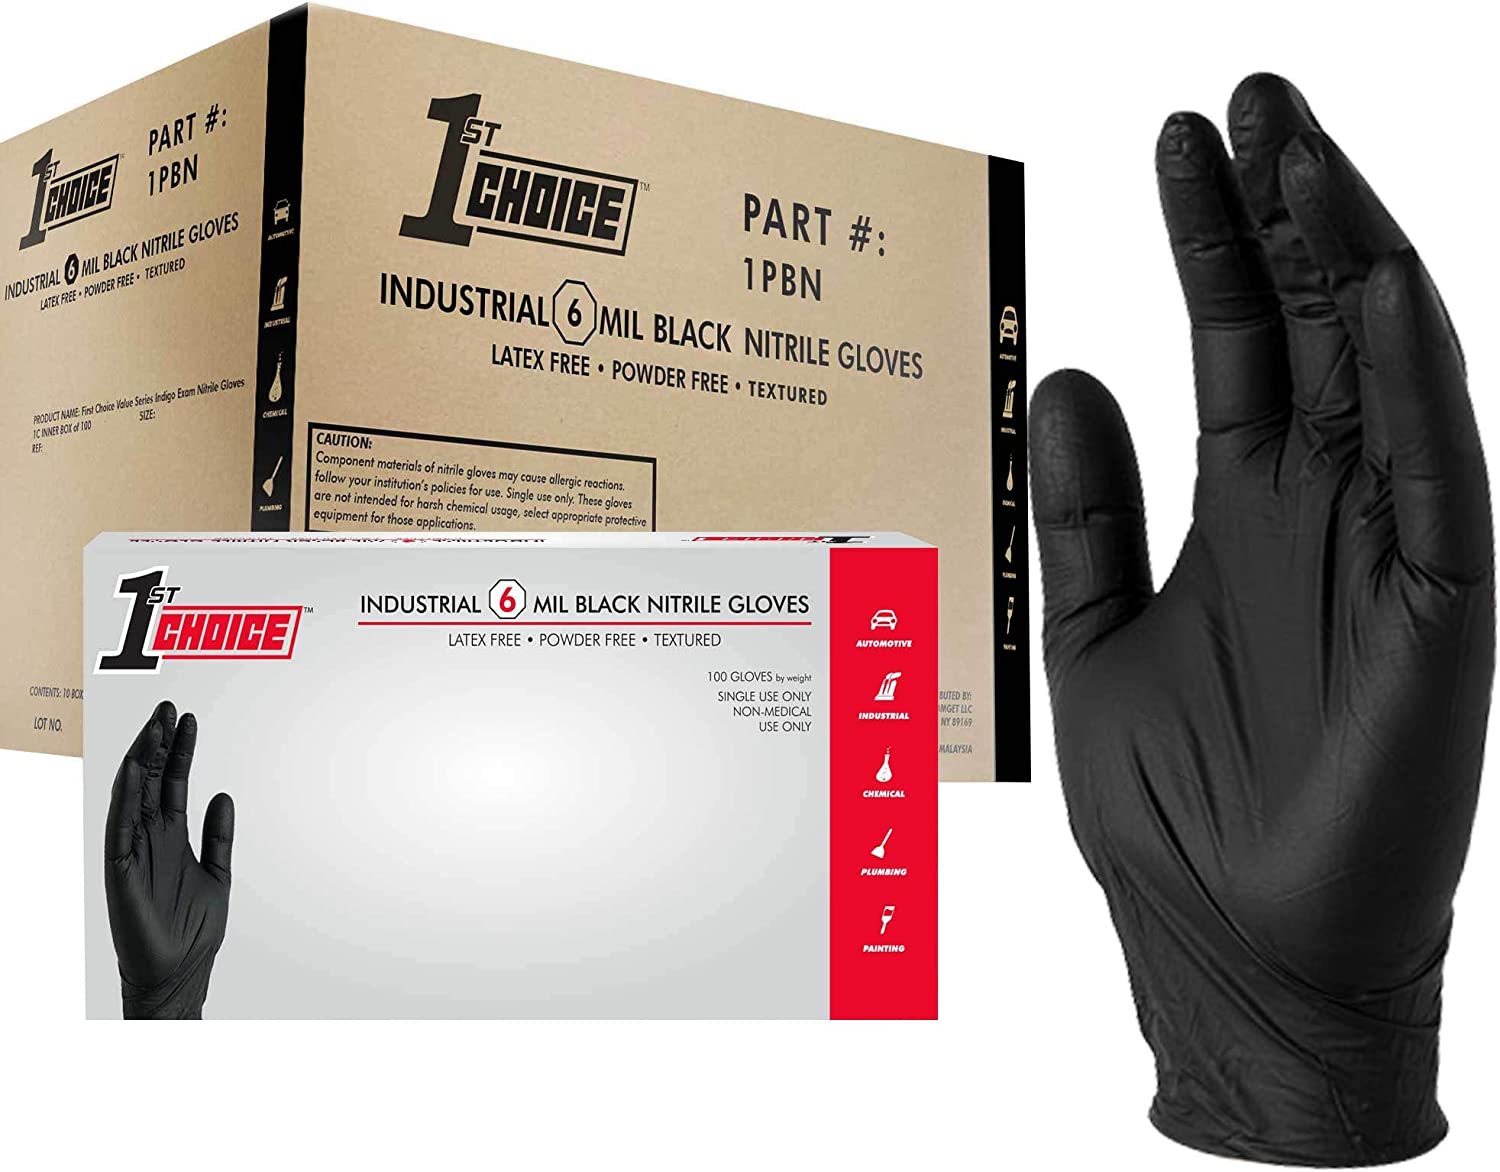 1st Choice Black Nitrile Industrial Disposable Gloves, 6 Mil, Latex & Powder-Free, Food-Safe, Textured